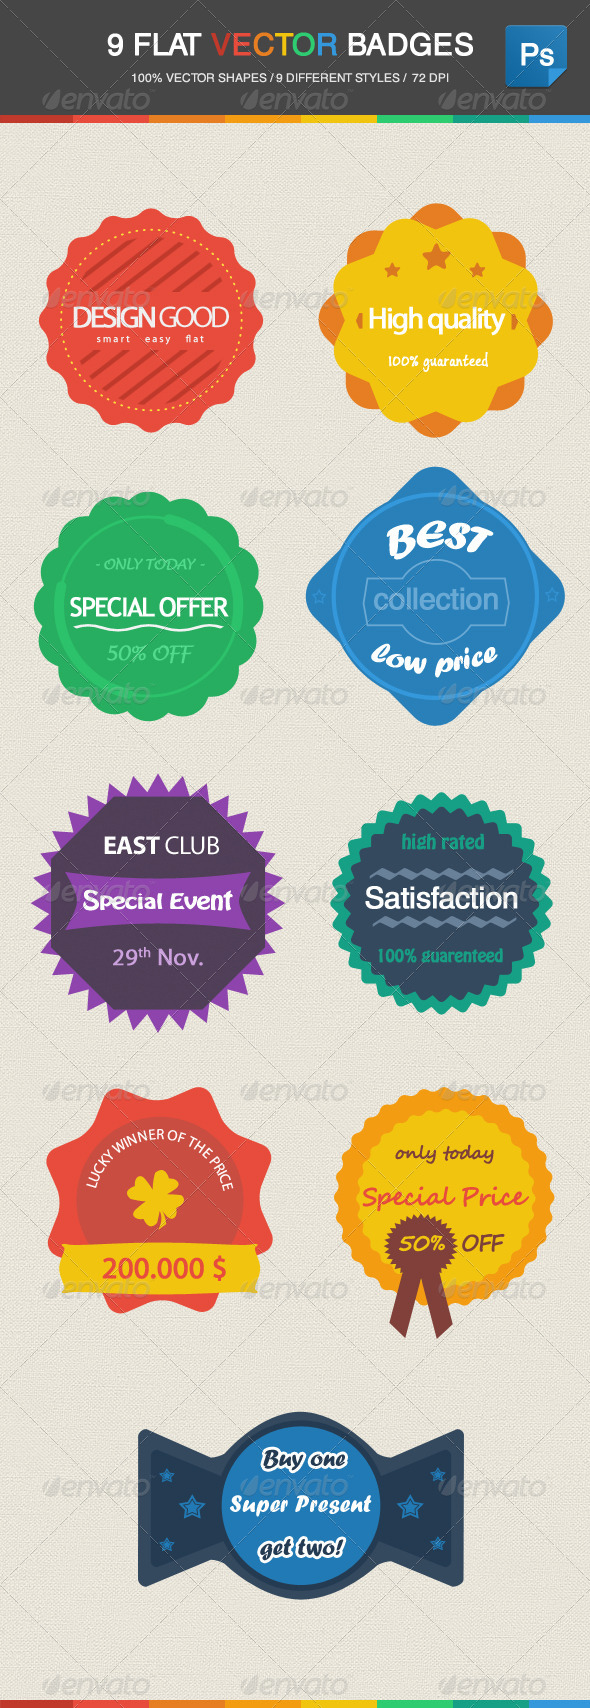 9 Flat Vector Badges - Badges & Stickers Web Elements